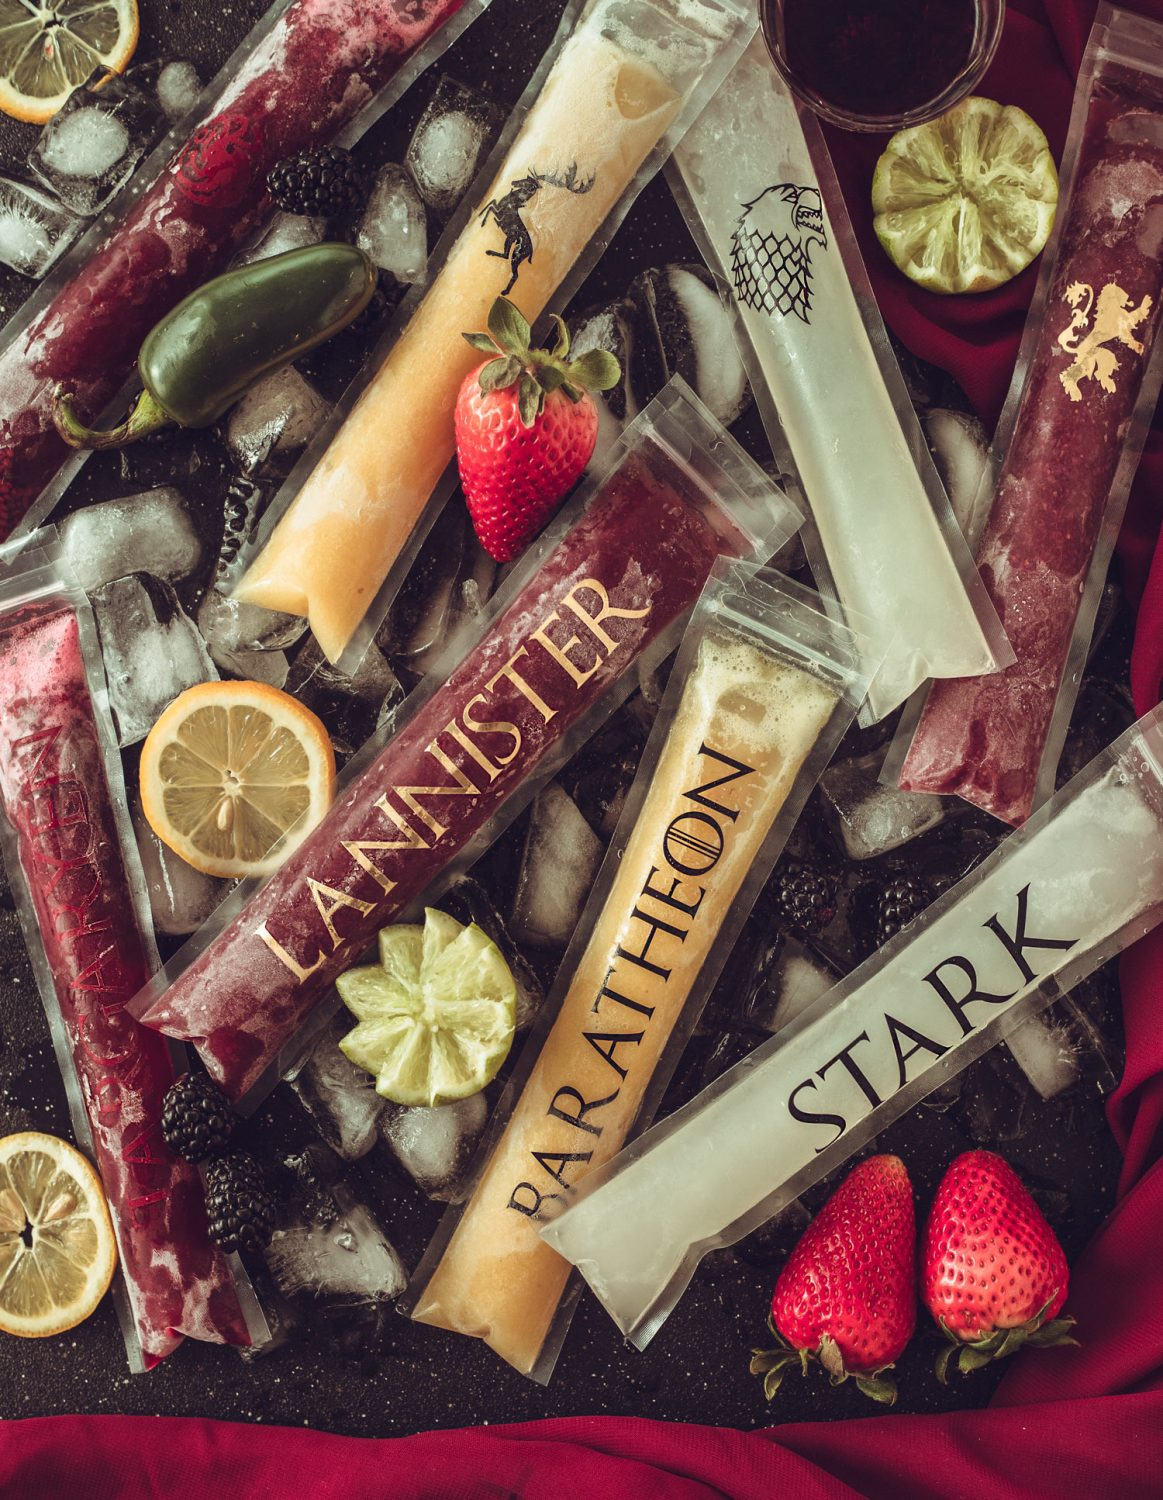 4 Game of Thrones boozy popsicles each representing the core houses of the show. Including Lannister Sangria Popsicles, Stark Moscow Mule Popsicles, Targaryen Spicy Whiskey Smash Popsicles, and Baratheon Piña Colada Popsicles. A perfect boozy treat for a Game of Thrones party! #ElleTalk #GameofThrones #GameofThronesParty #BoozyPopsicles #Popsicles #CocktailRecipe #Cocktail